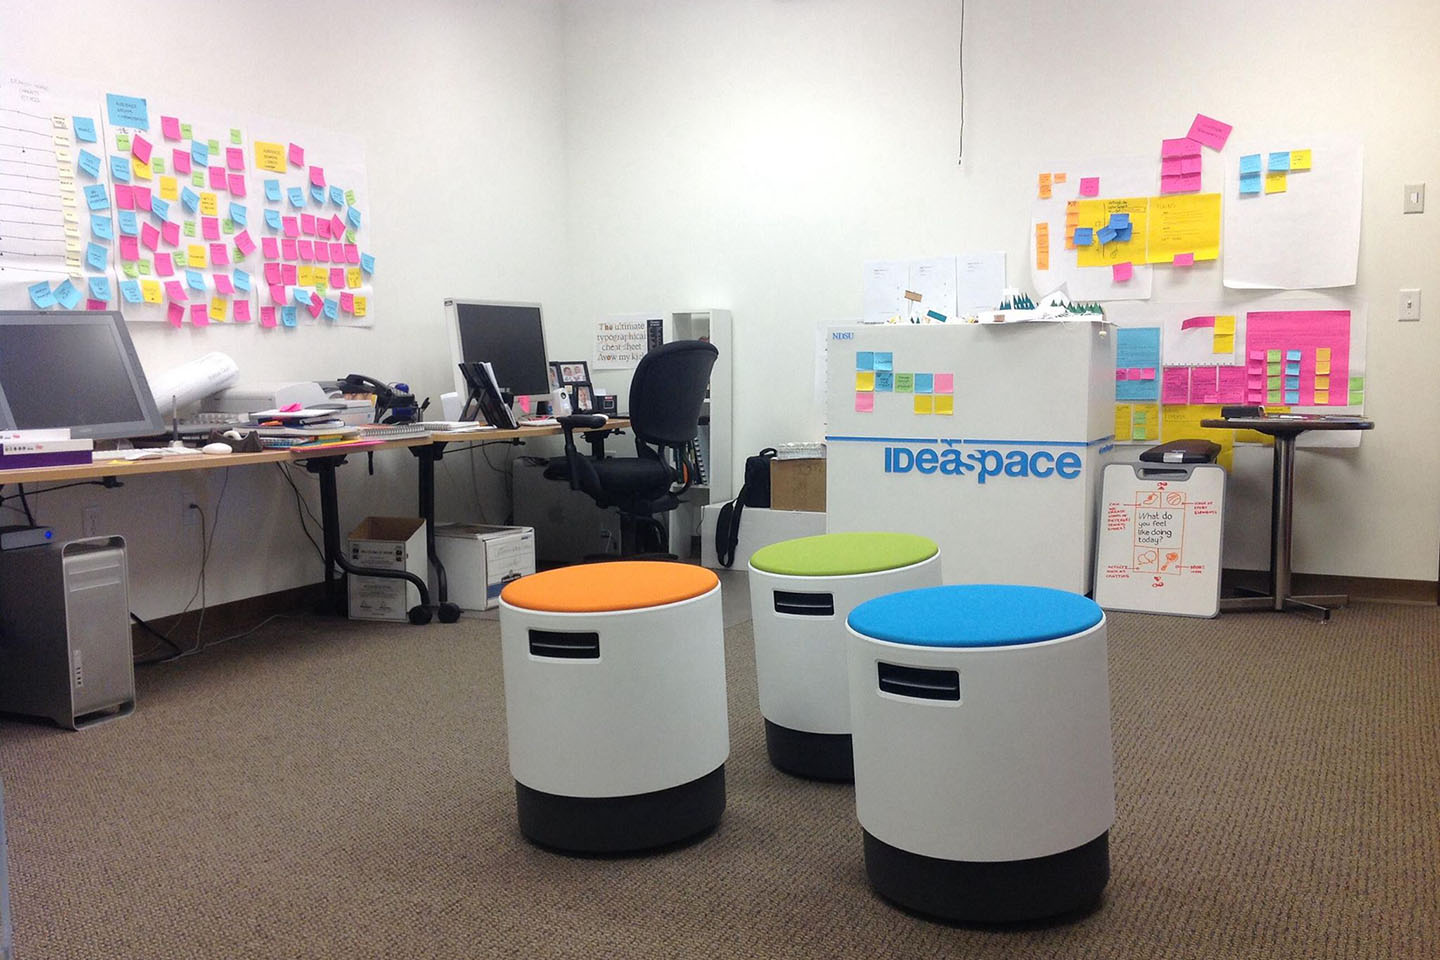 Colorful stools, post-it notes, and two desks in an office with white walls and brown carpet